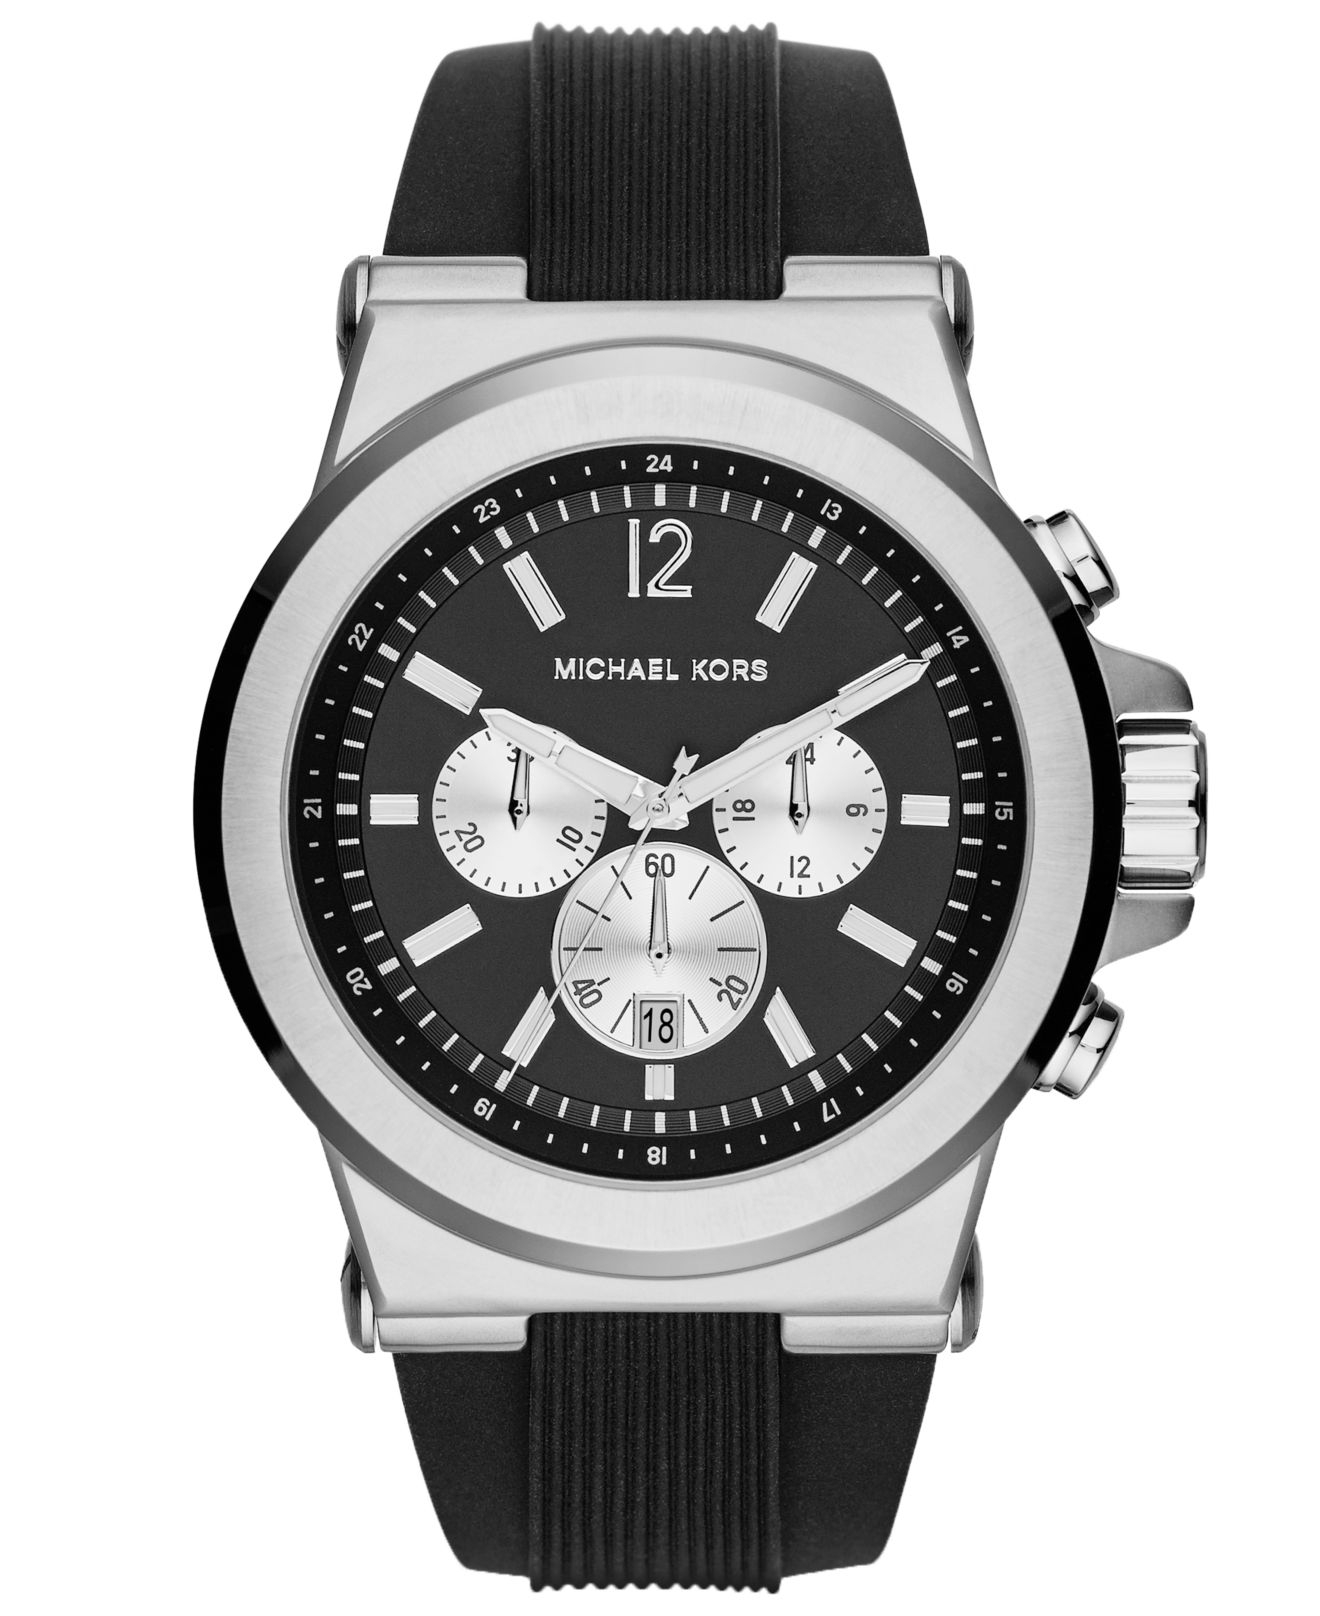 michael kors men s chronograph dylan black silicone strap watch gallery previously at macy s · men s michael kors chronograph